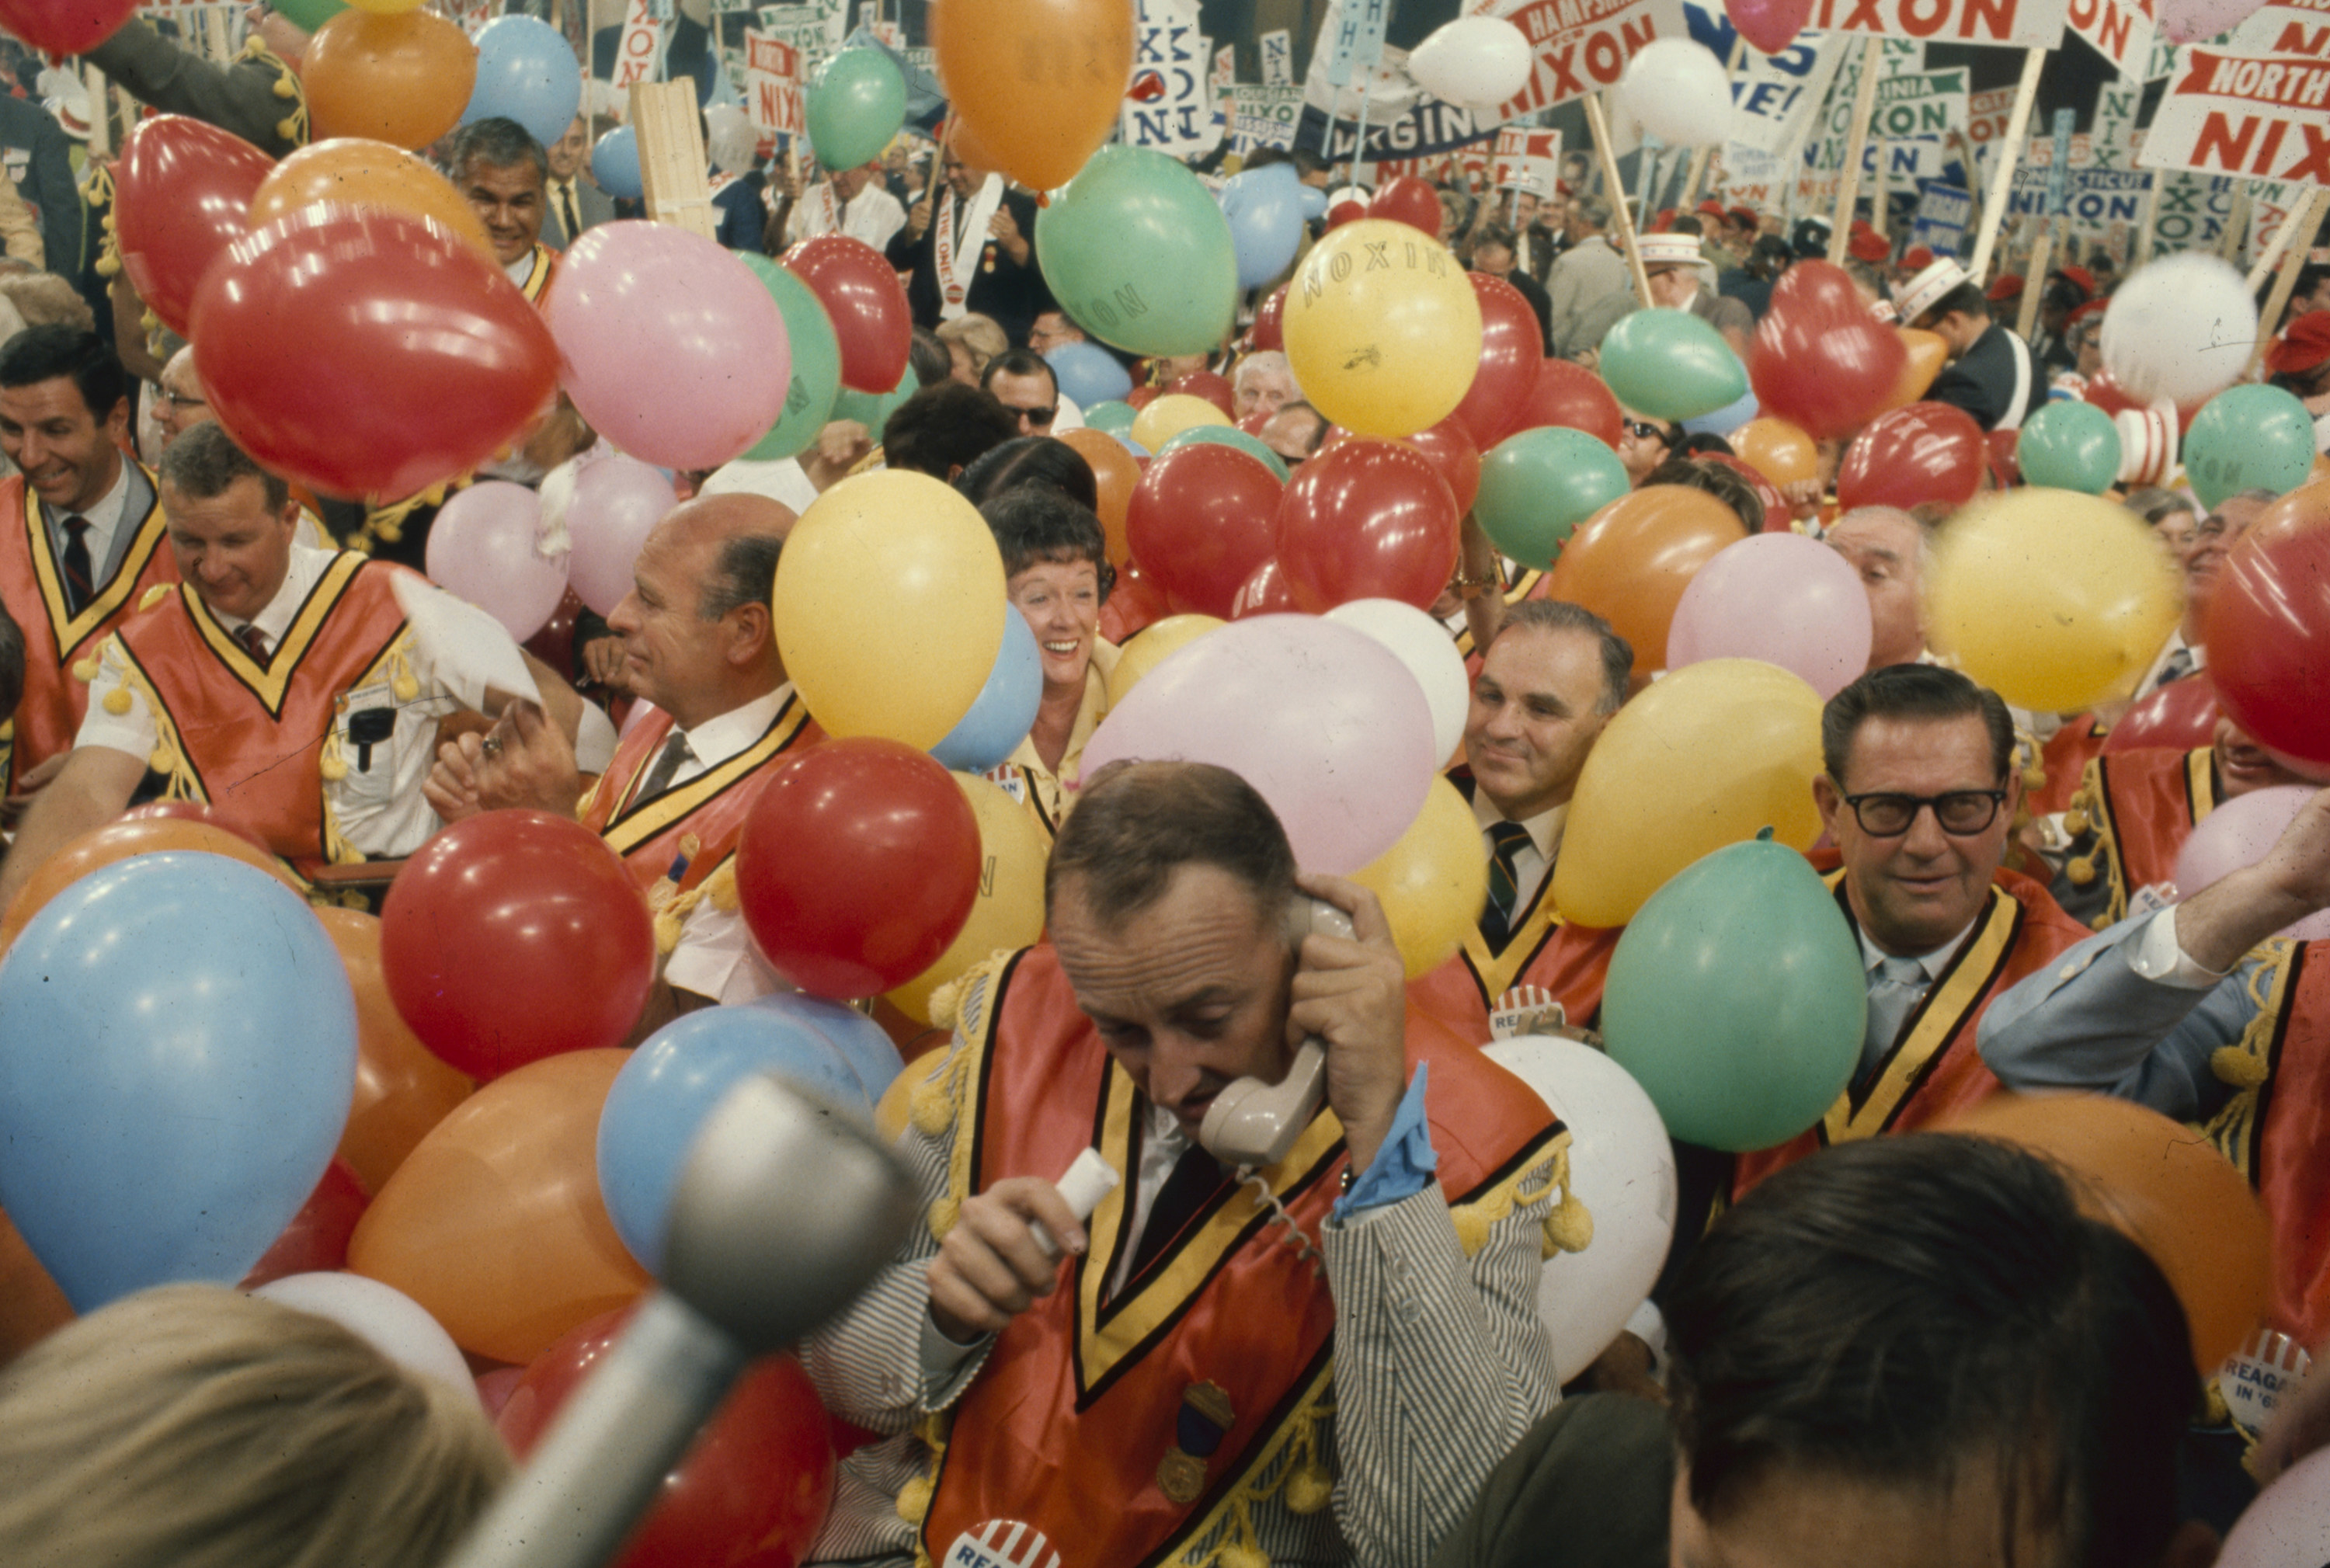 A man on a phone amidst a sea of balloons